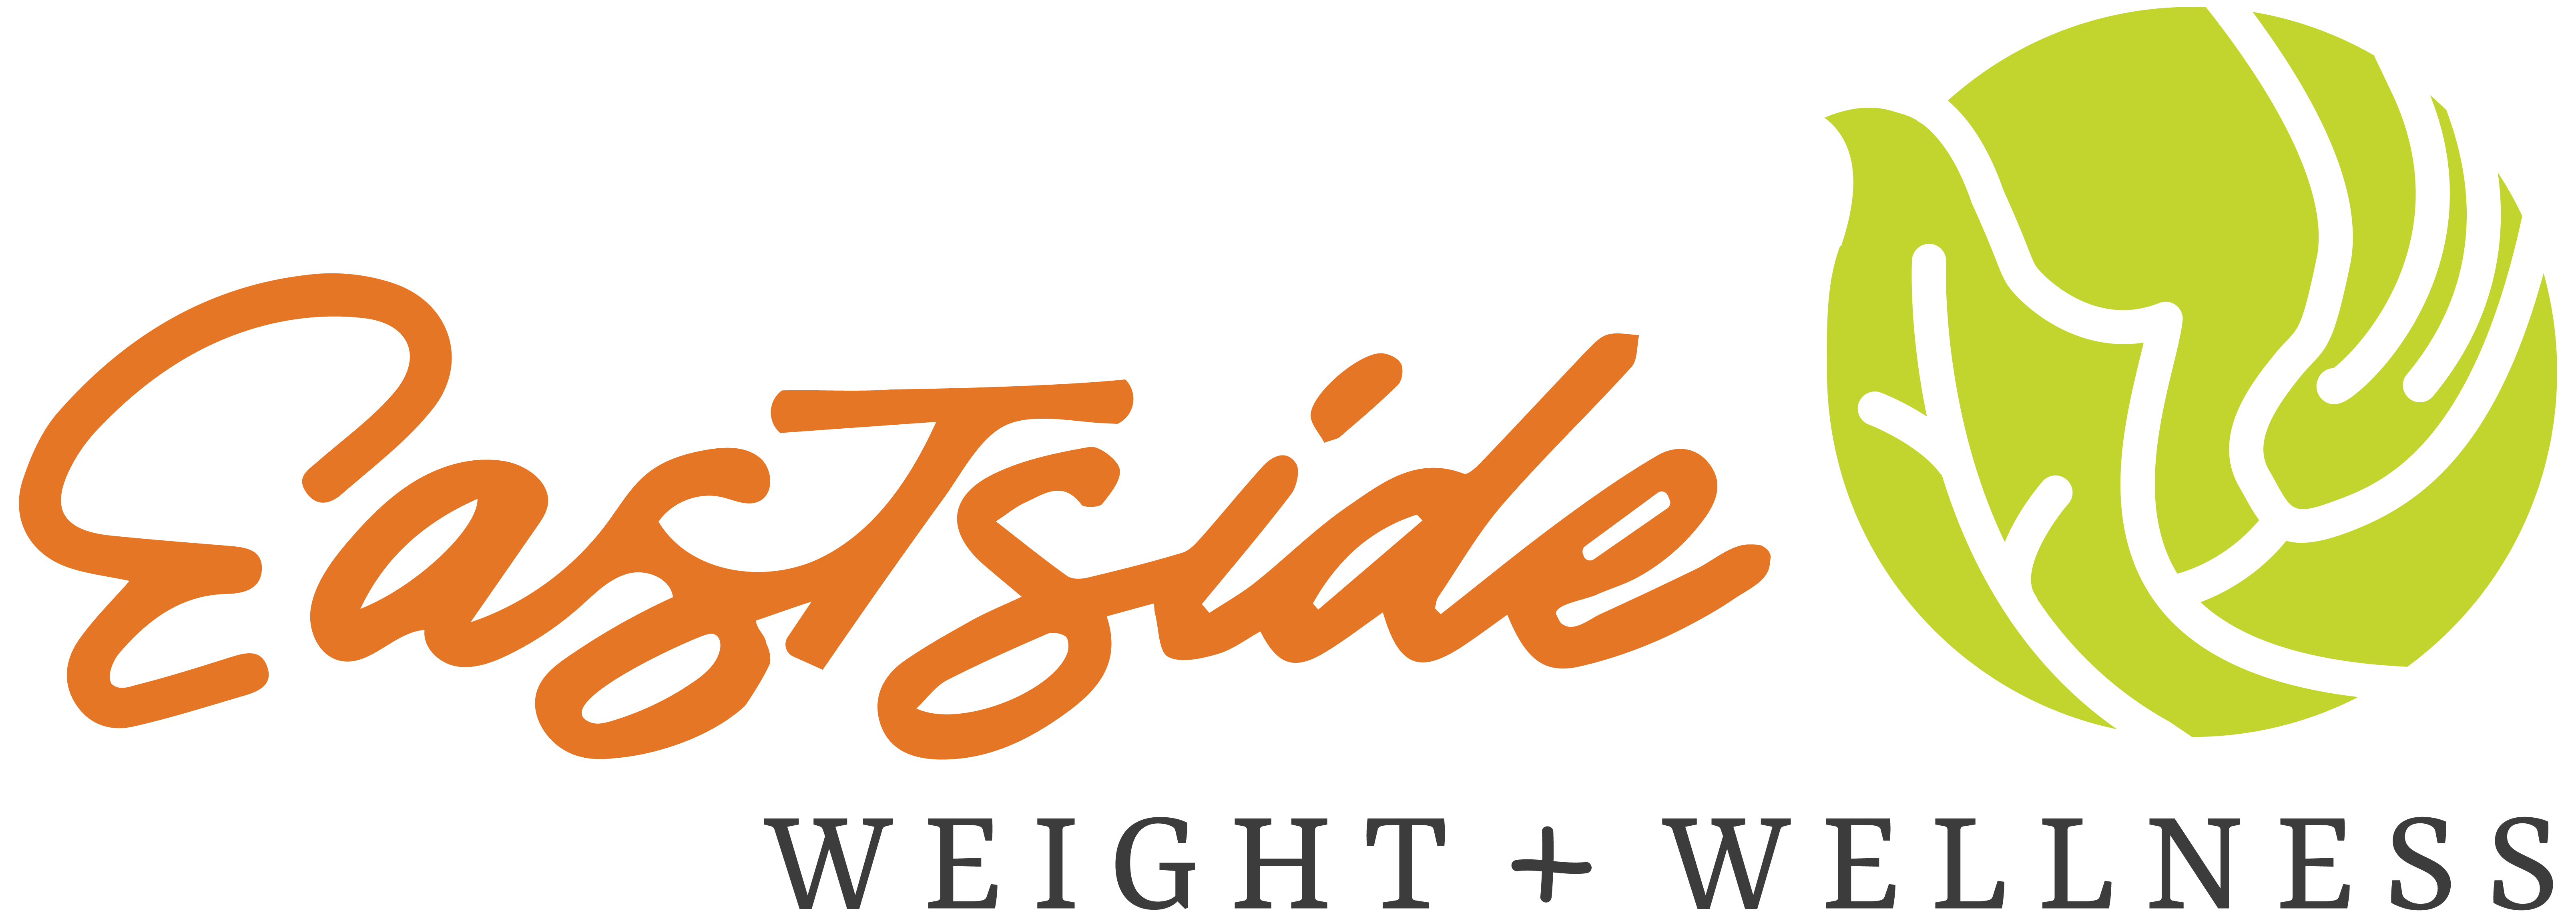 Eastside Weight and Wellness_Logo - large